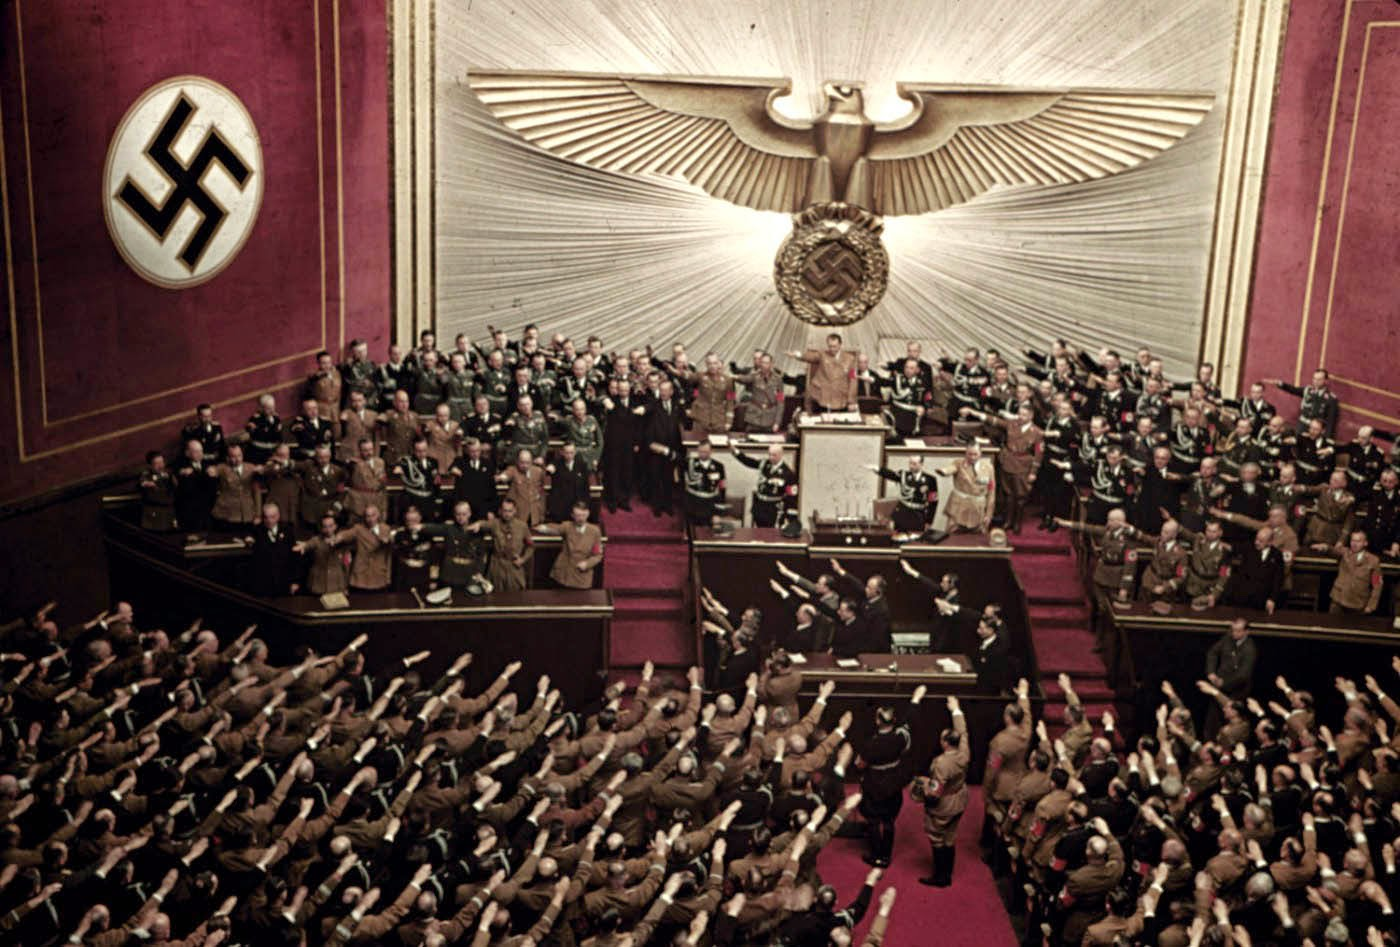 Adolf Hitler makes keynote address at Reichstag session, Kroll Opera House, Berlin, 1939. (Image: RareHistoricalPhotos)